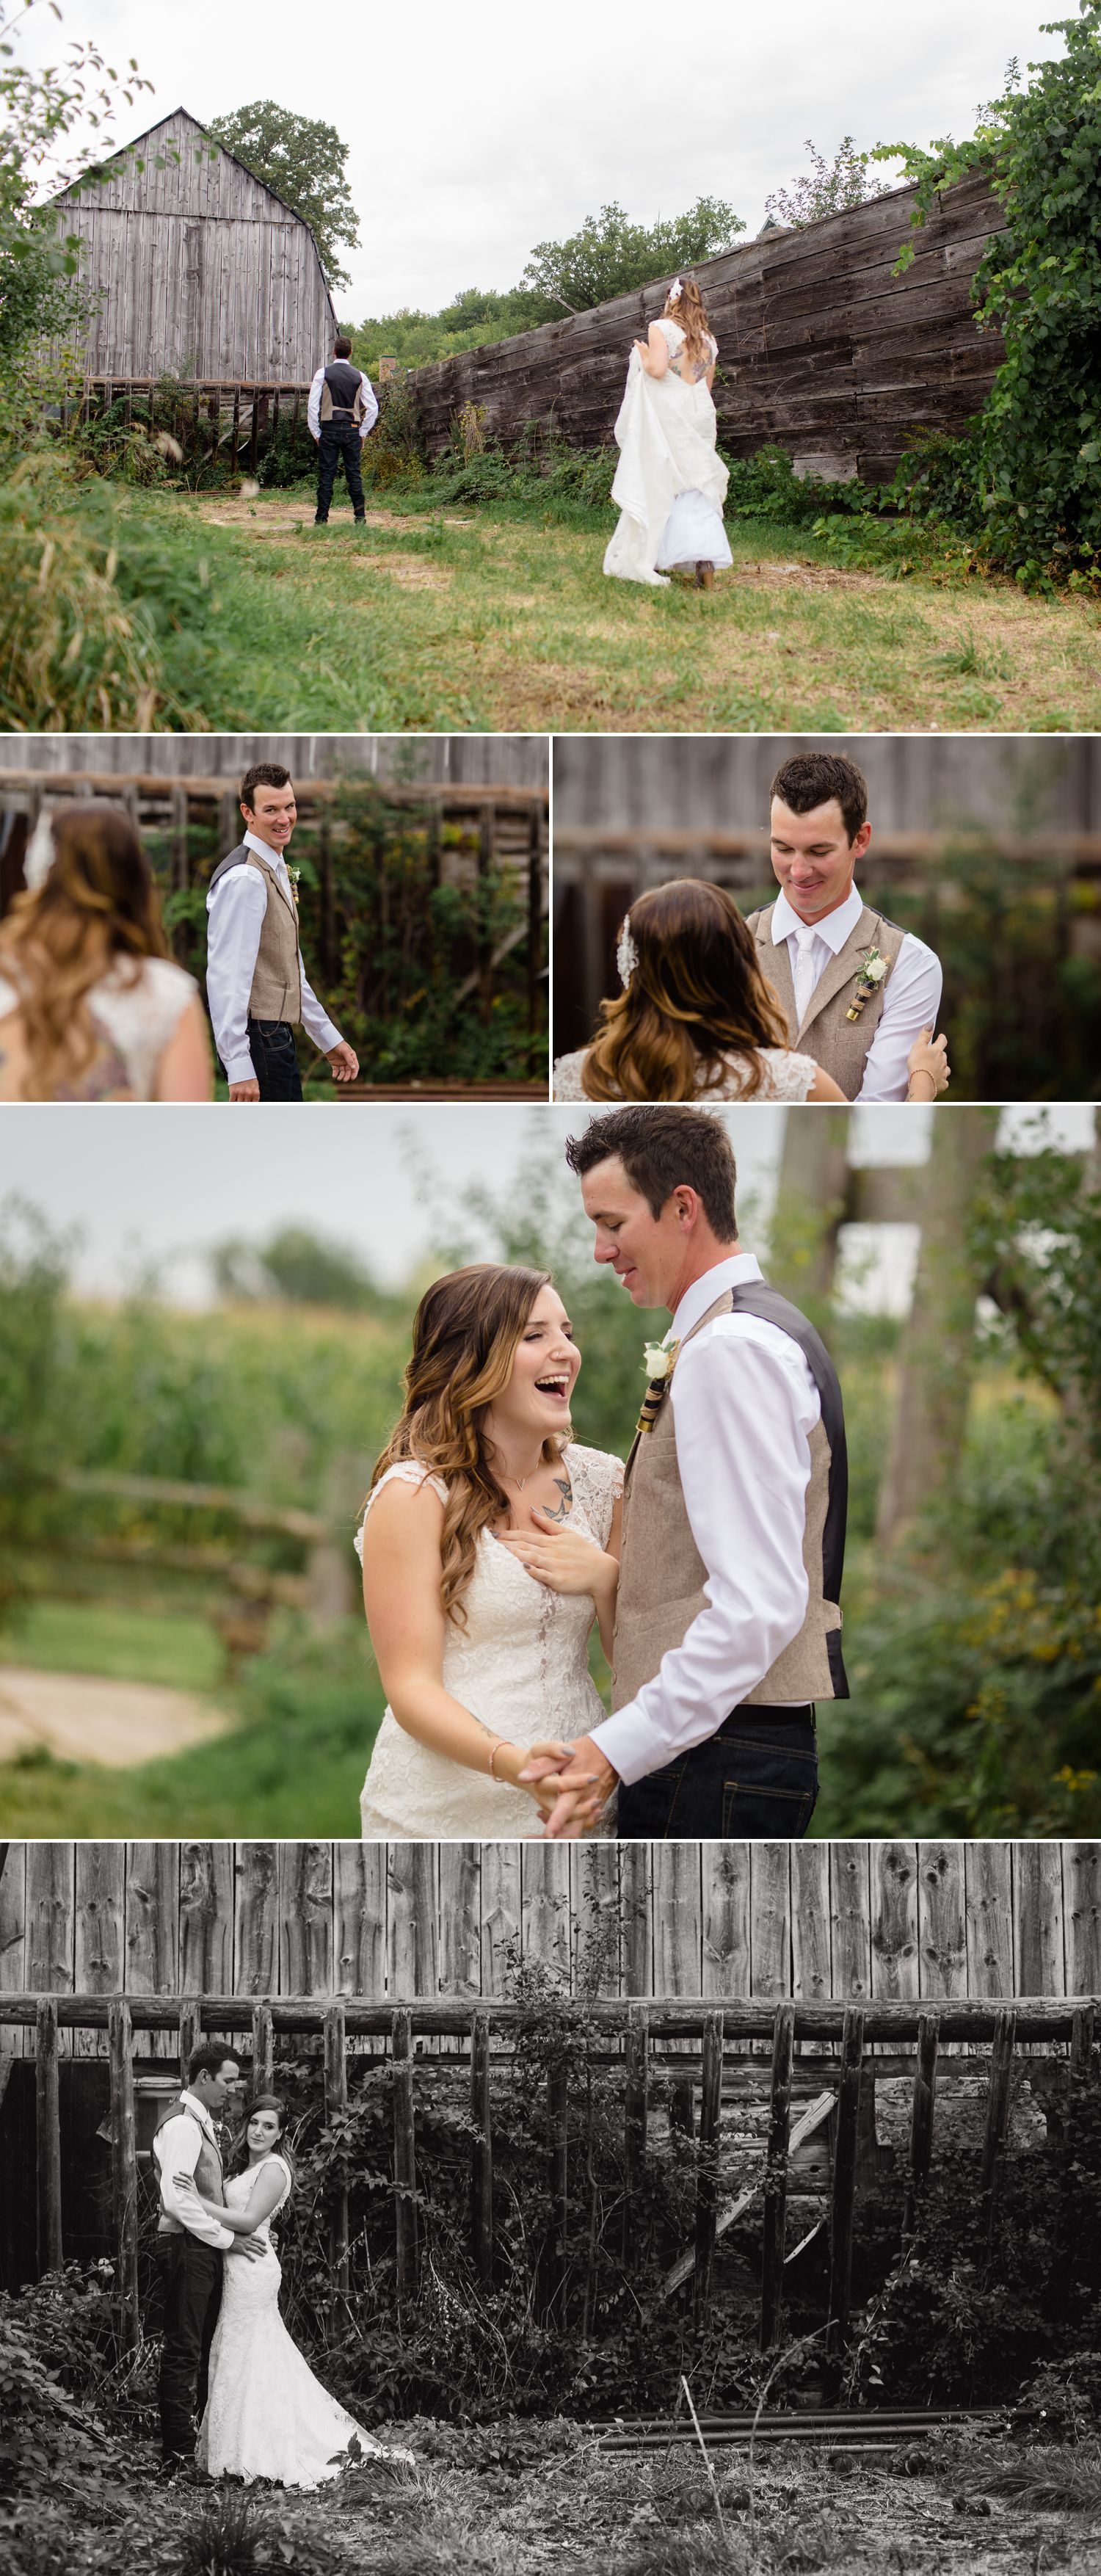 The bride and groom during their 'First Look' before their rustic barn wedding